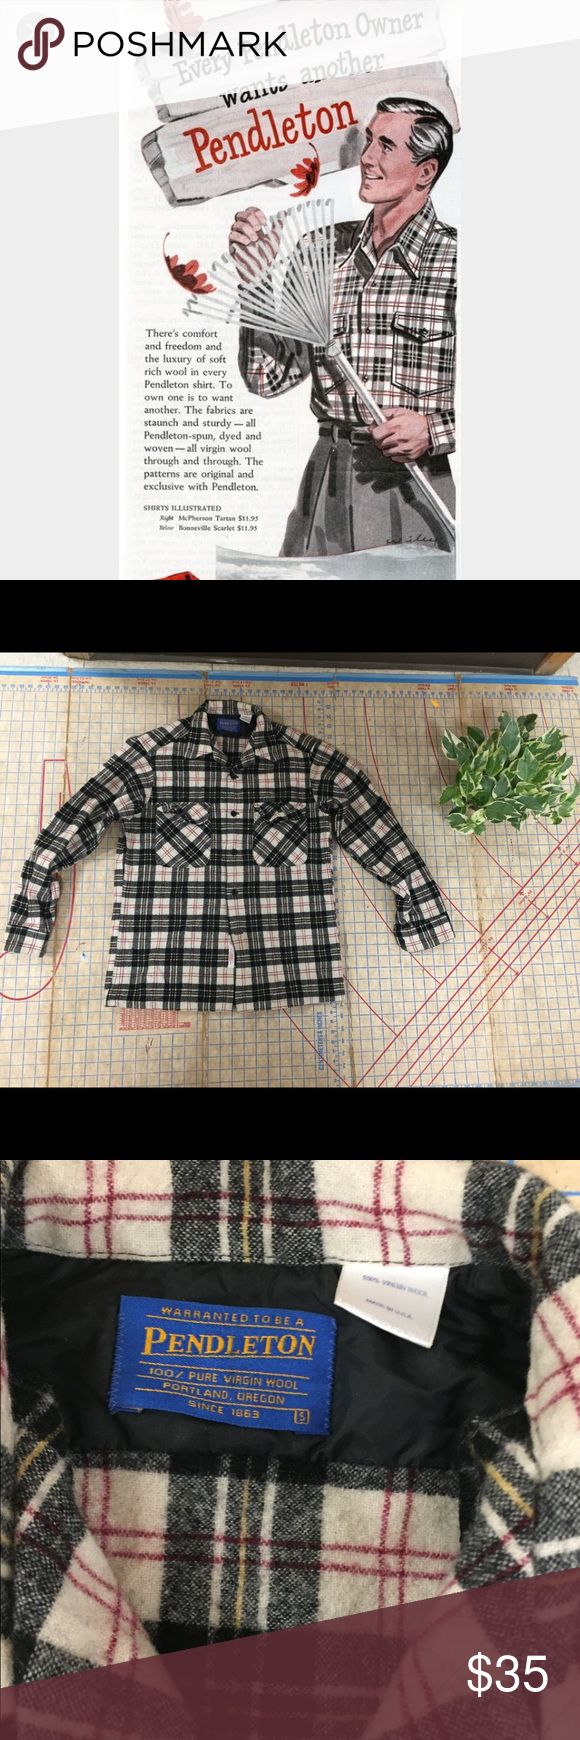 """Vintage/Retro Pendleton wool large shirt size sm In good condition vintage/retro Pendleton wool Macpherson tartan lodge shirt size small. Made in USA. Shirt is in good condition. Ha a small wear spot/hole on one sleeve. See pic. Plaid is black, white, red and yellow. This is a rougher wool and is probably best with an undershirt. True Americans lodge style. Shirt is 27"""" inlength, chest is 19"""" across and sleeve is 21.5"""". Pendleton Shirts Casual Button Down Shirts"""